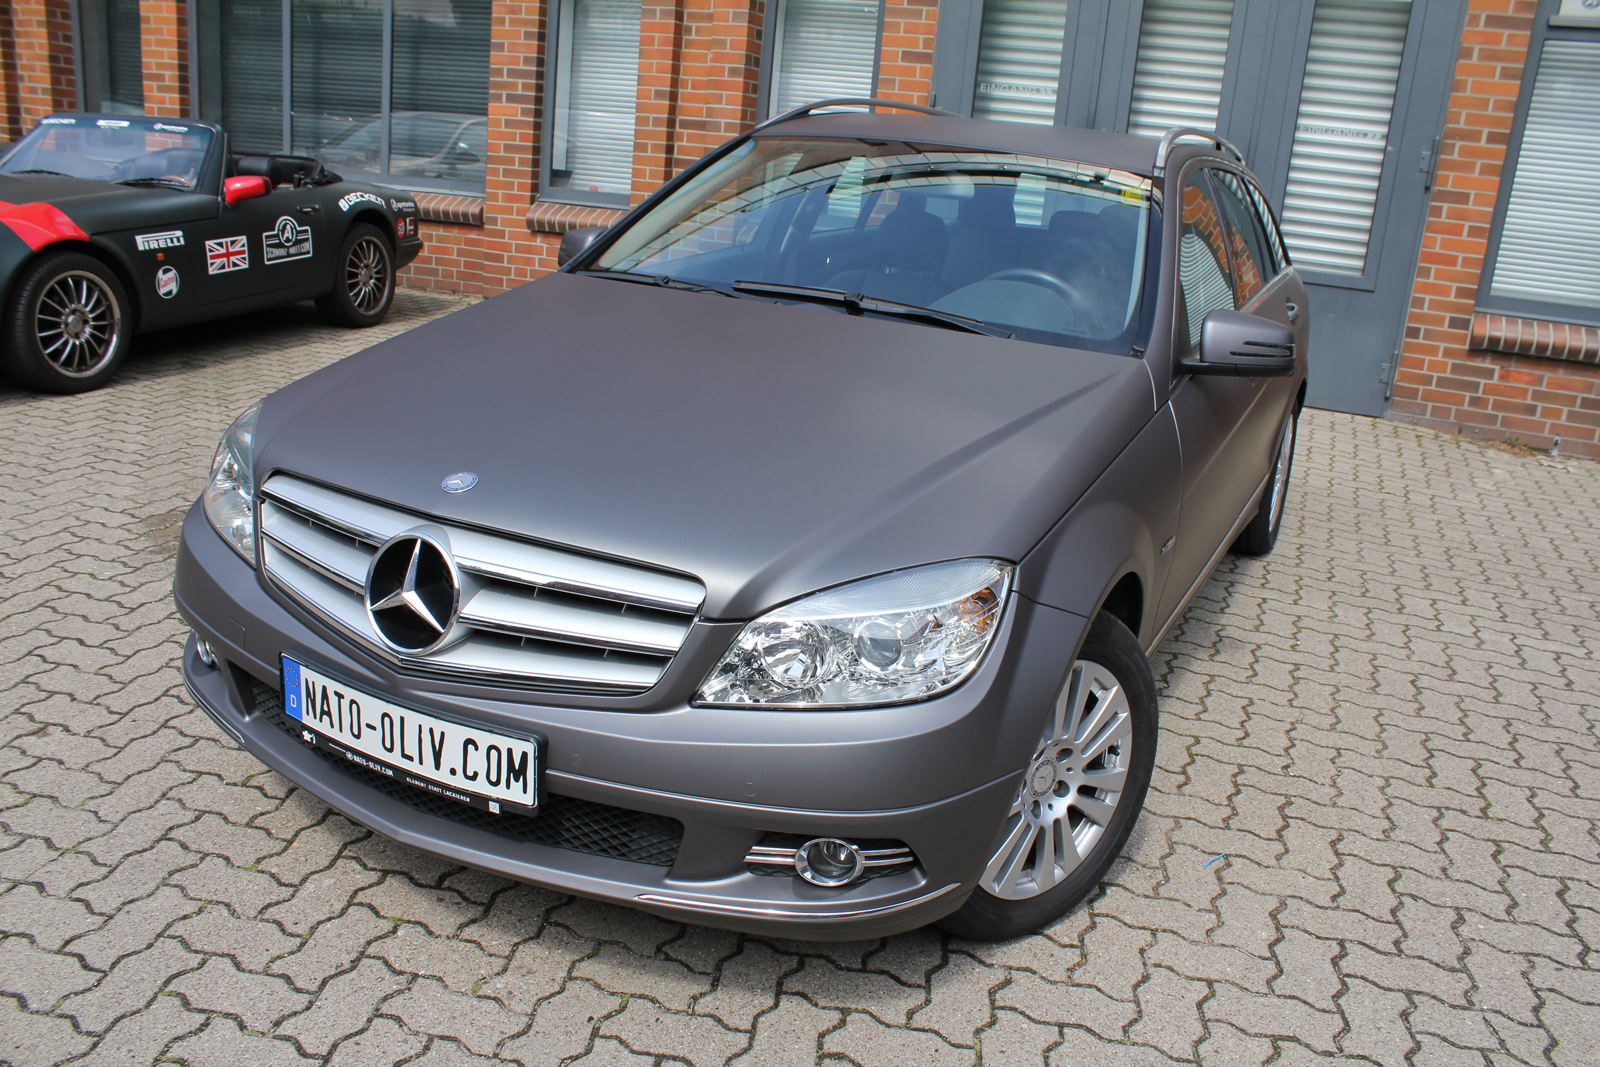 MERCEDES_C-KLASSE_KOMBI_FOLIERUNG_ANTHRAZIT_MATT_METALLIC_03